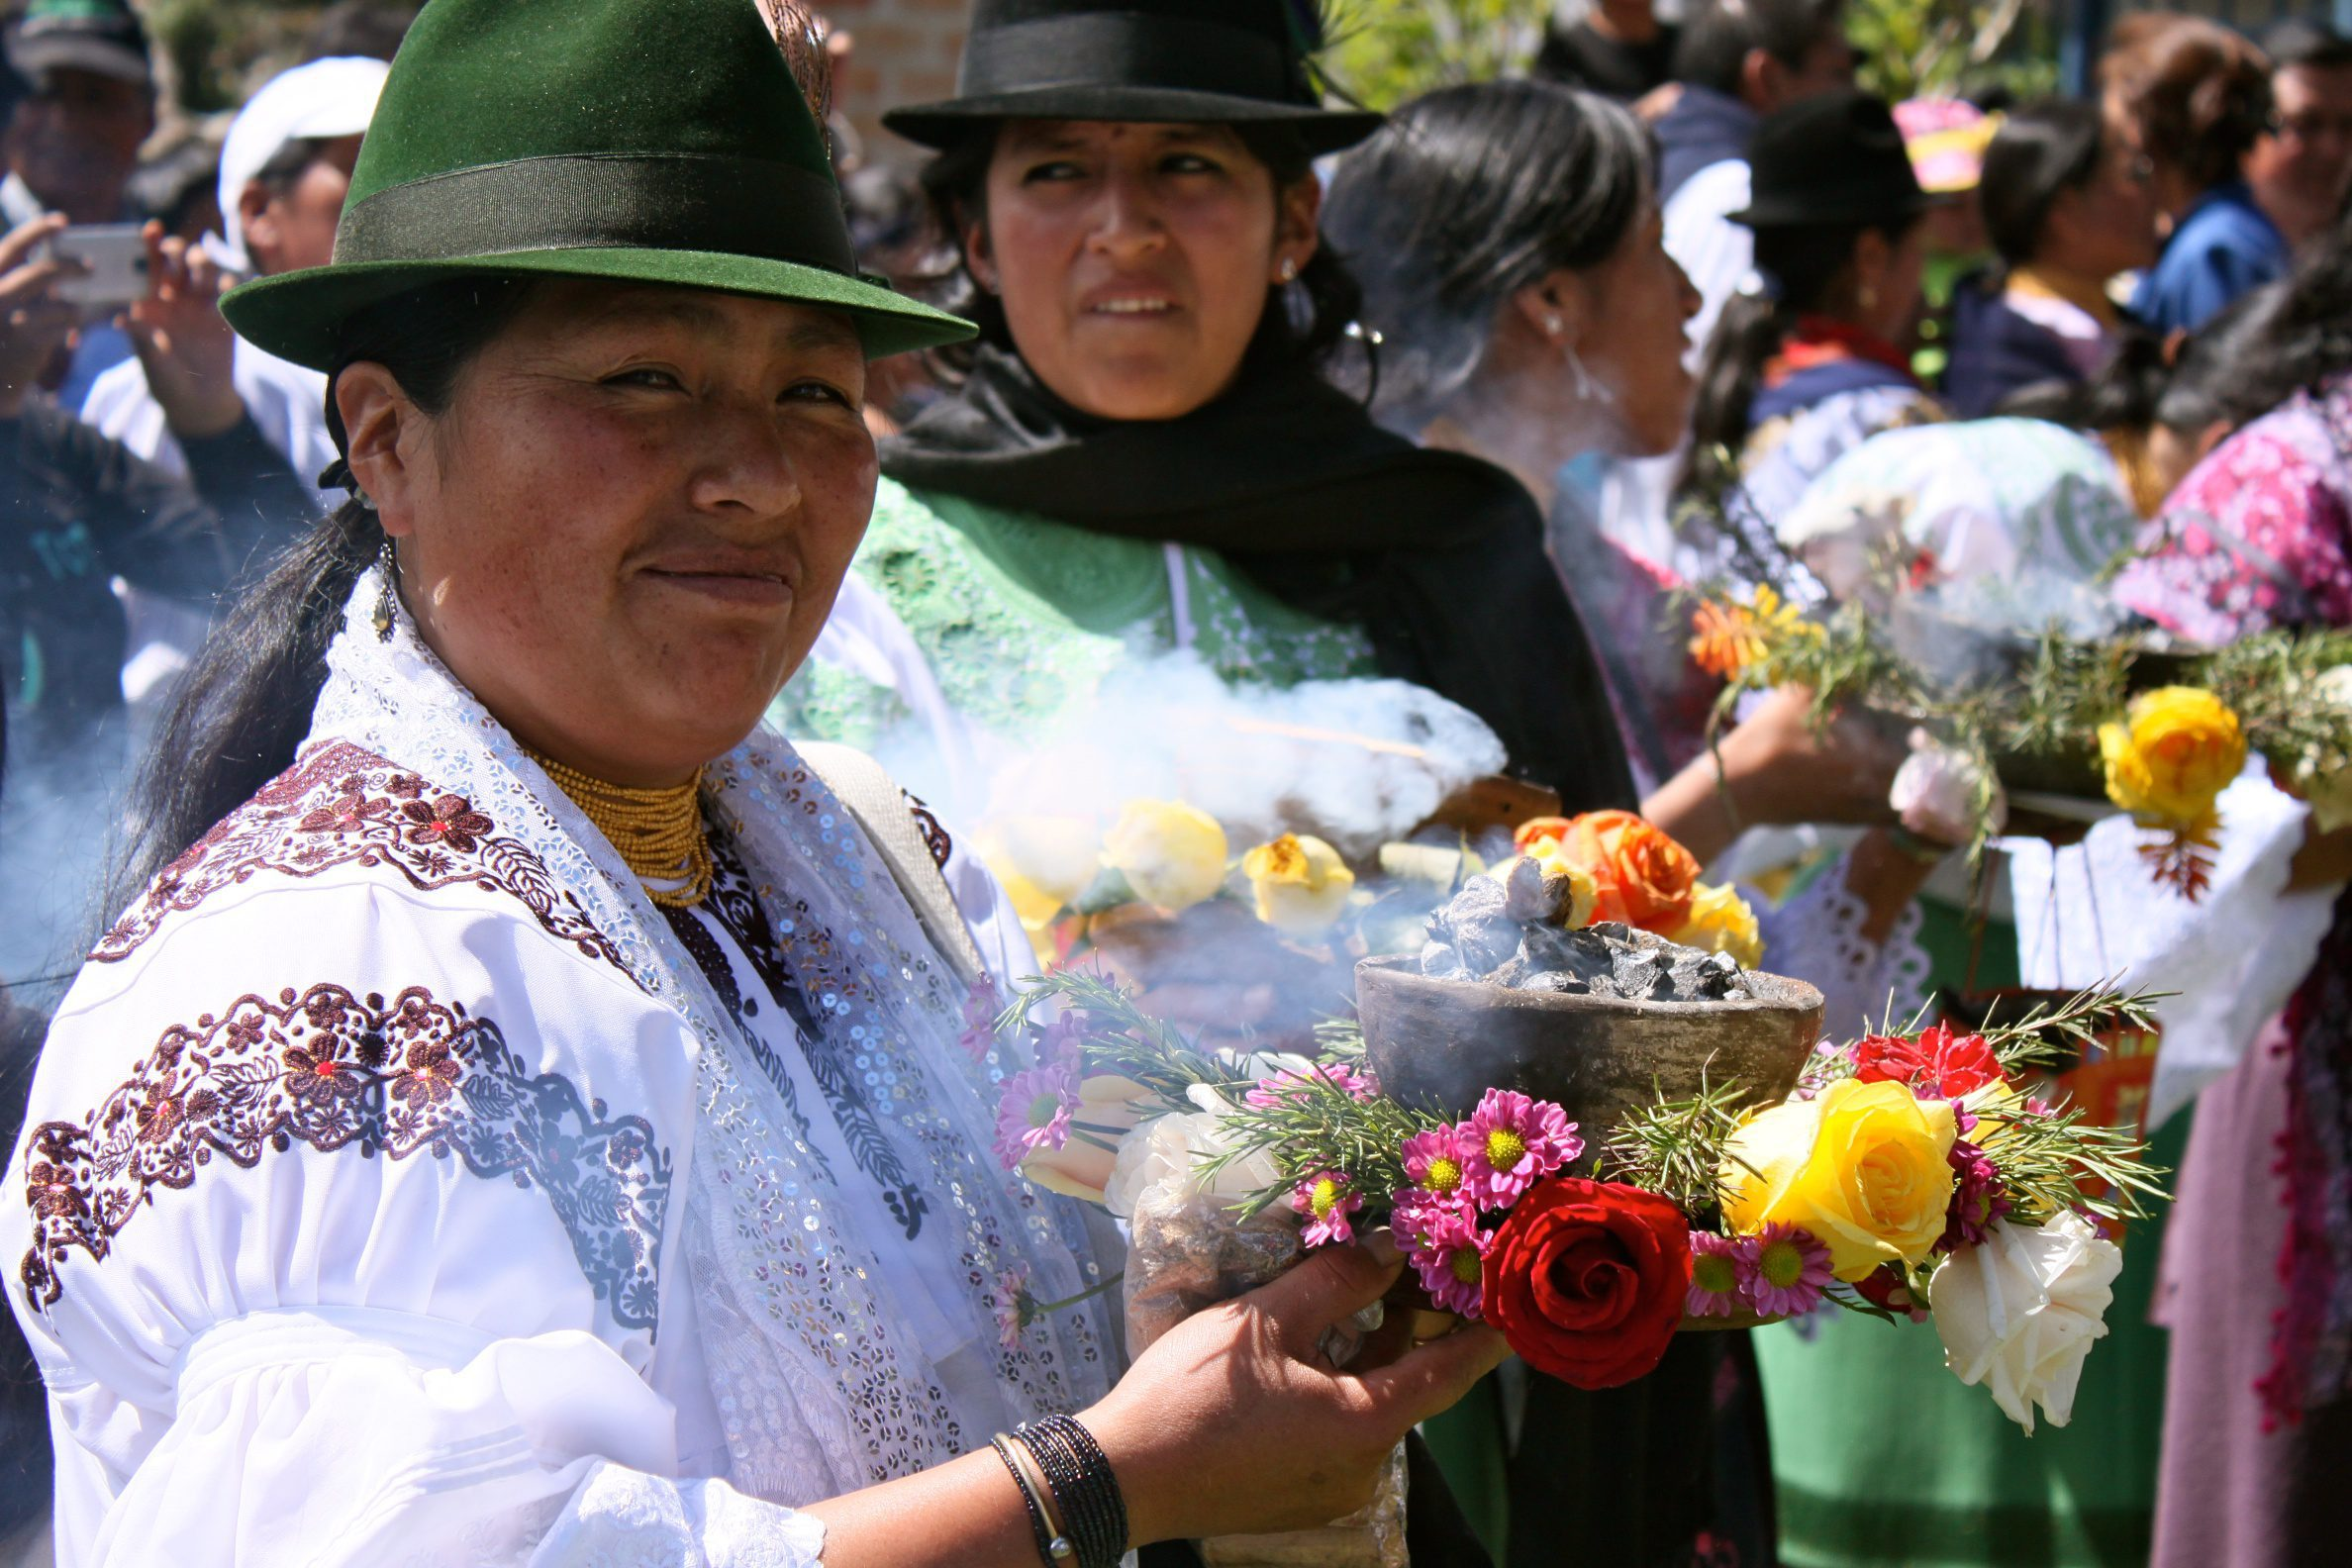 two women holding flowers at a marketplace